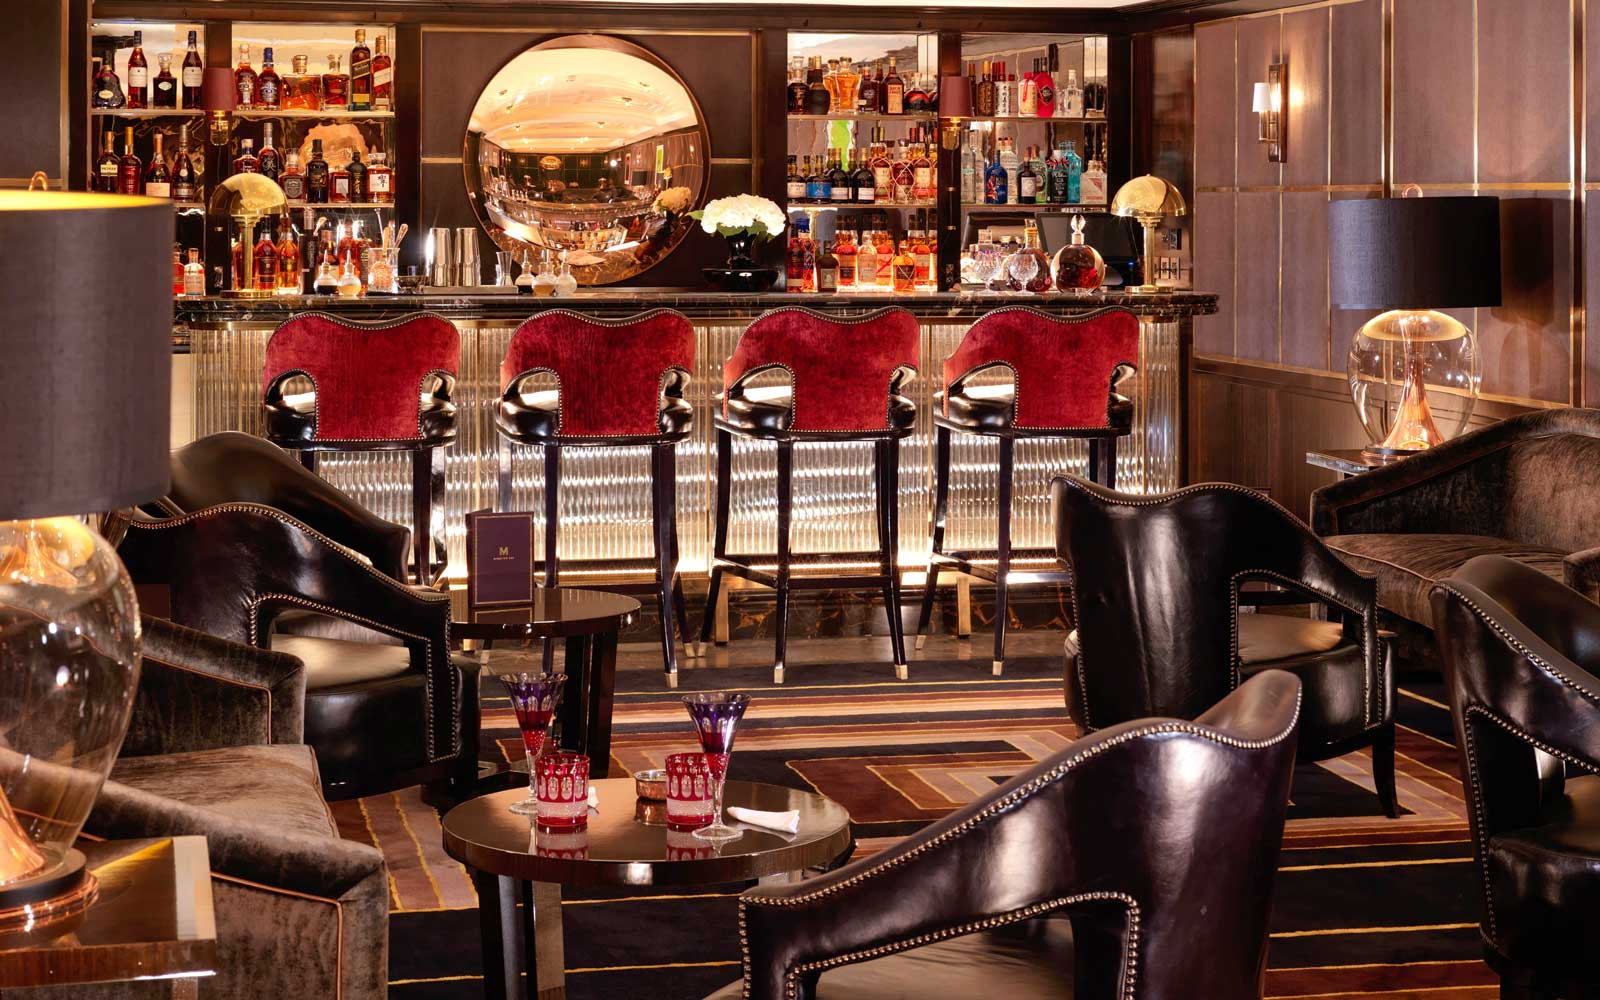 Get 34% Off a 2-night Stay at the Elegant Flemings Mayfair Hotel in London